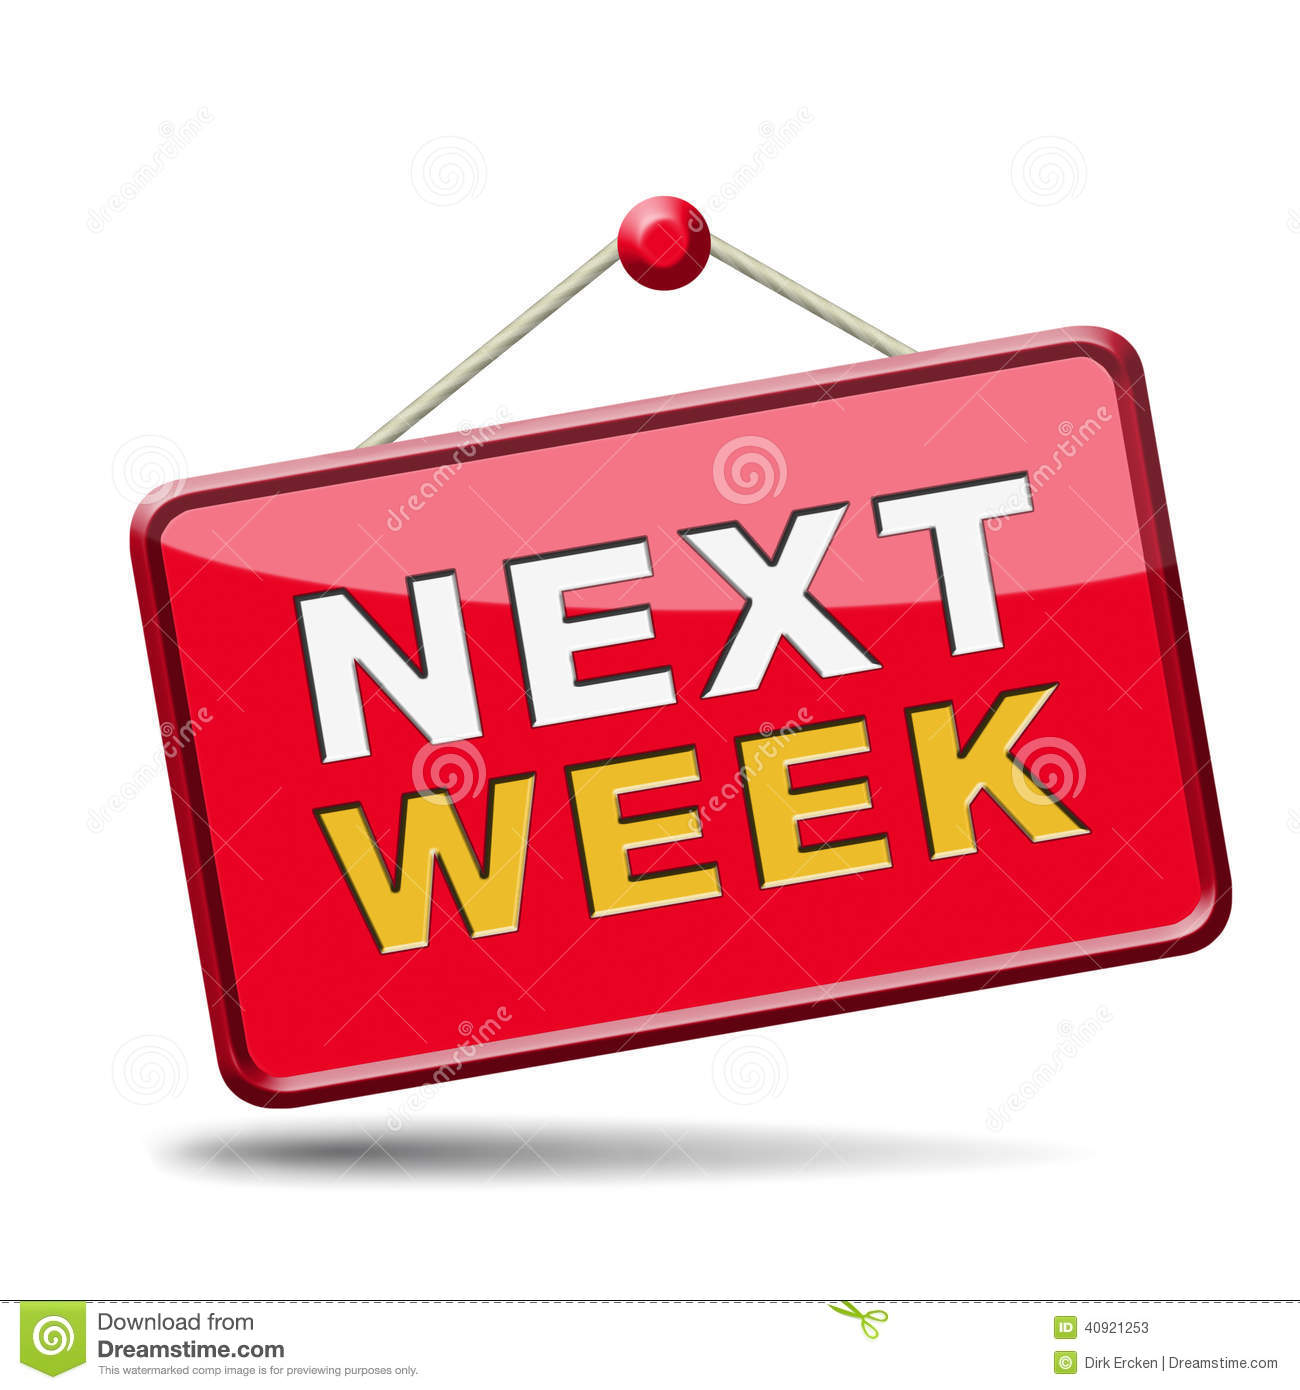 Next week coming soon near future agenda time schedule calendar.